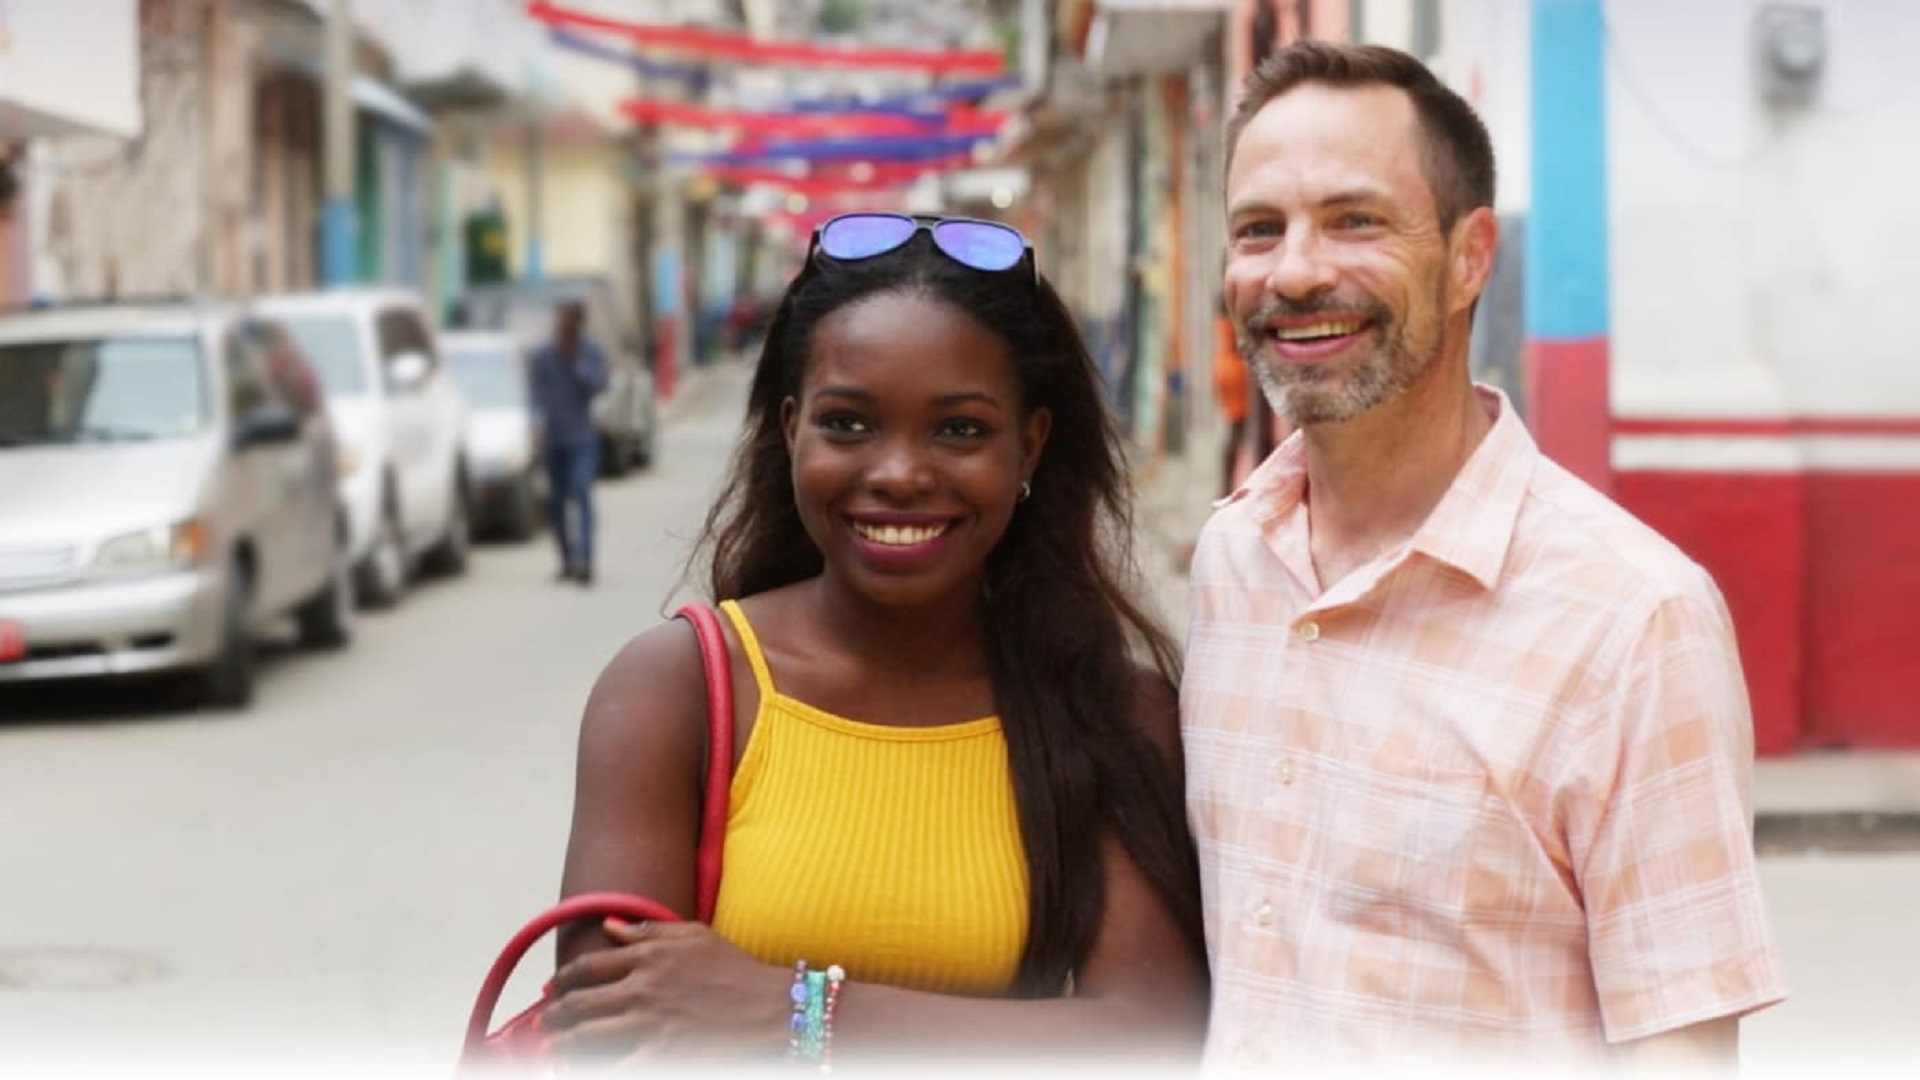 Watch 90 Day Fiancé: Before The 90 Days - Season 2 Episode 5